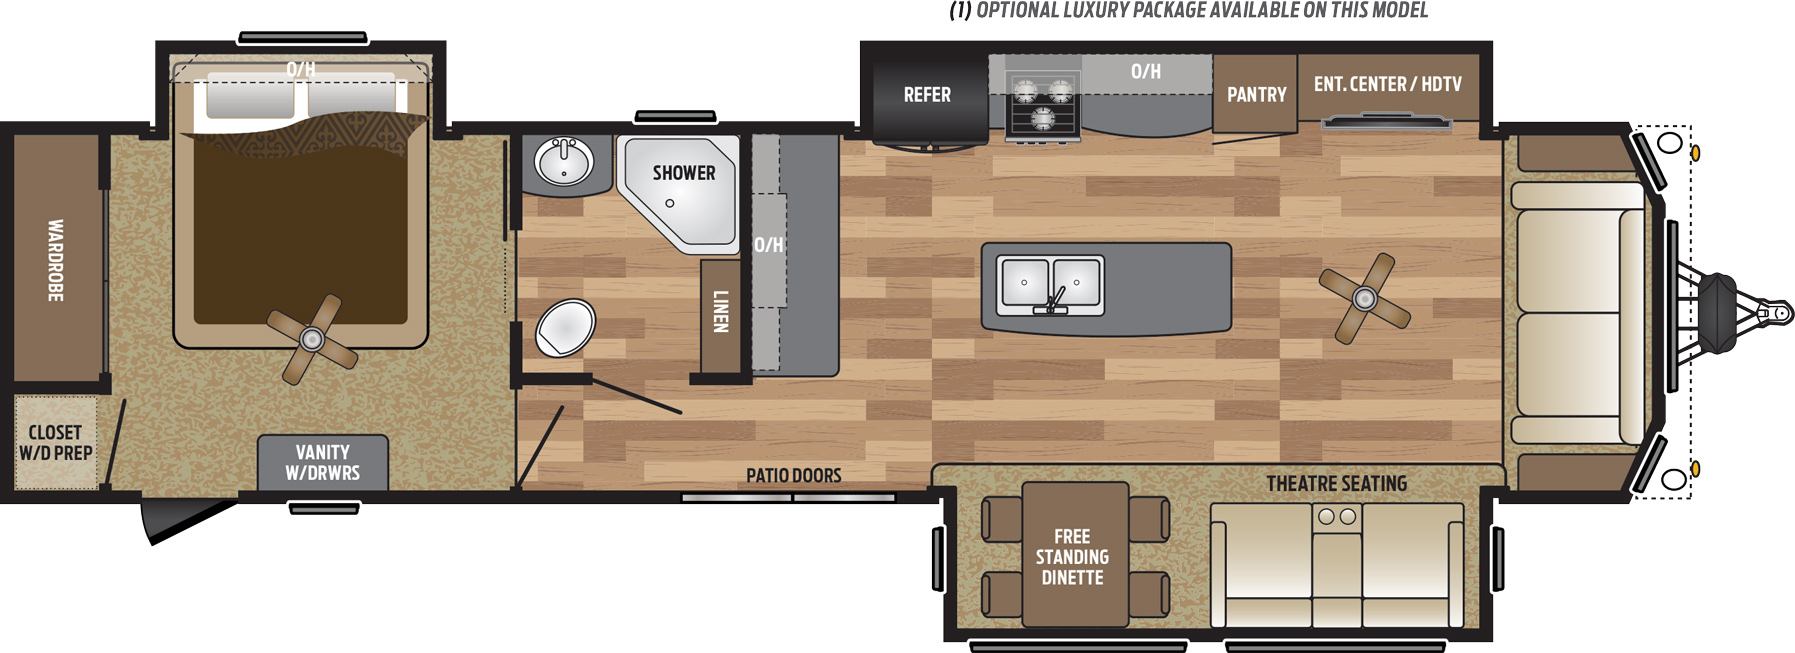 2019 KEYSTONE RETREAT 39MKTS (couples) Floorplan